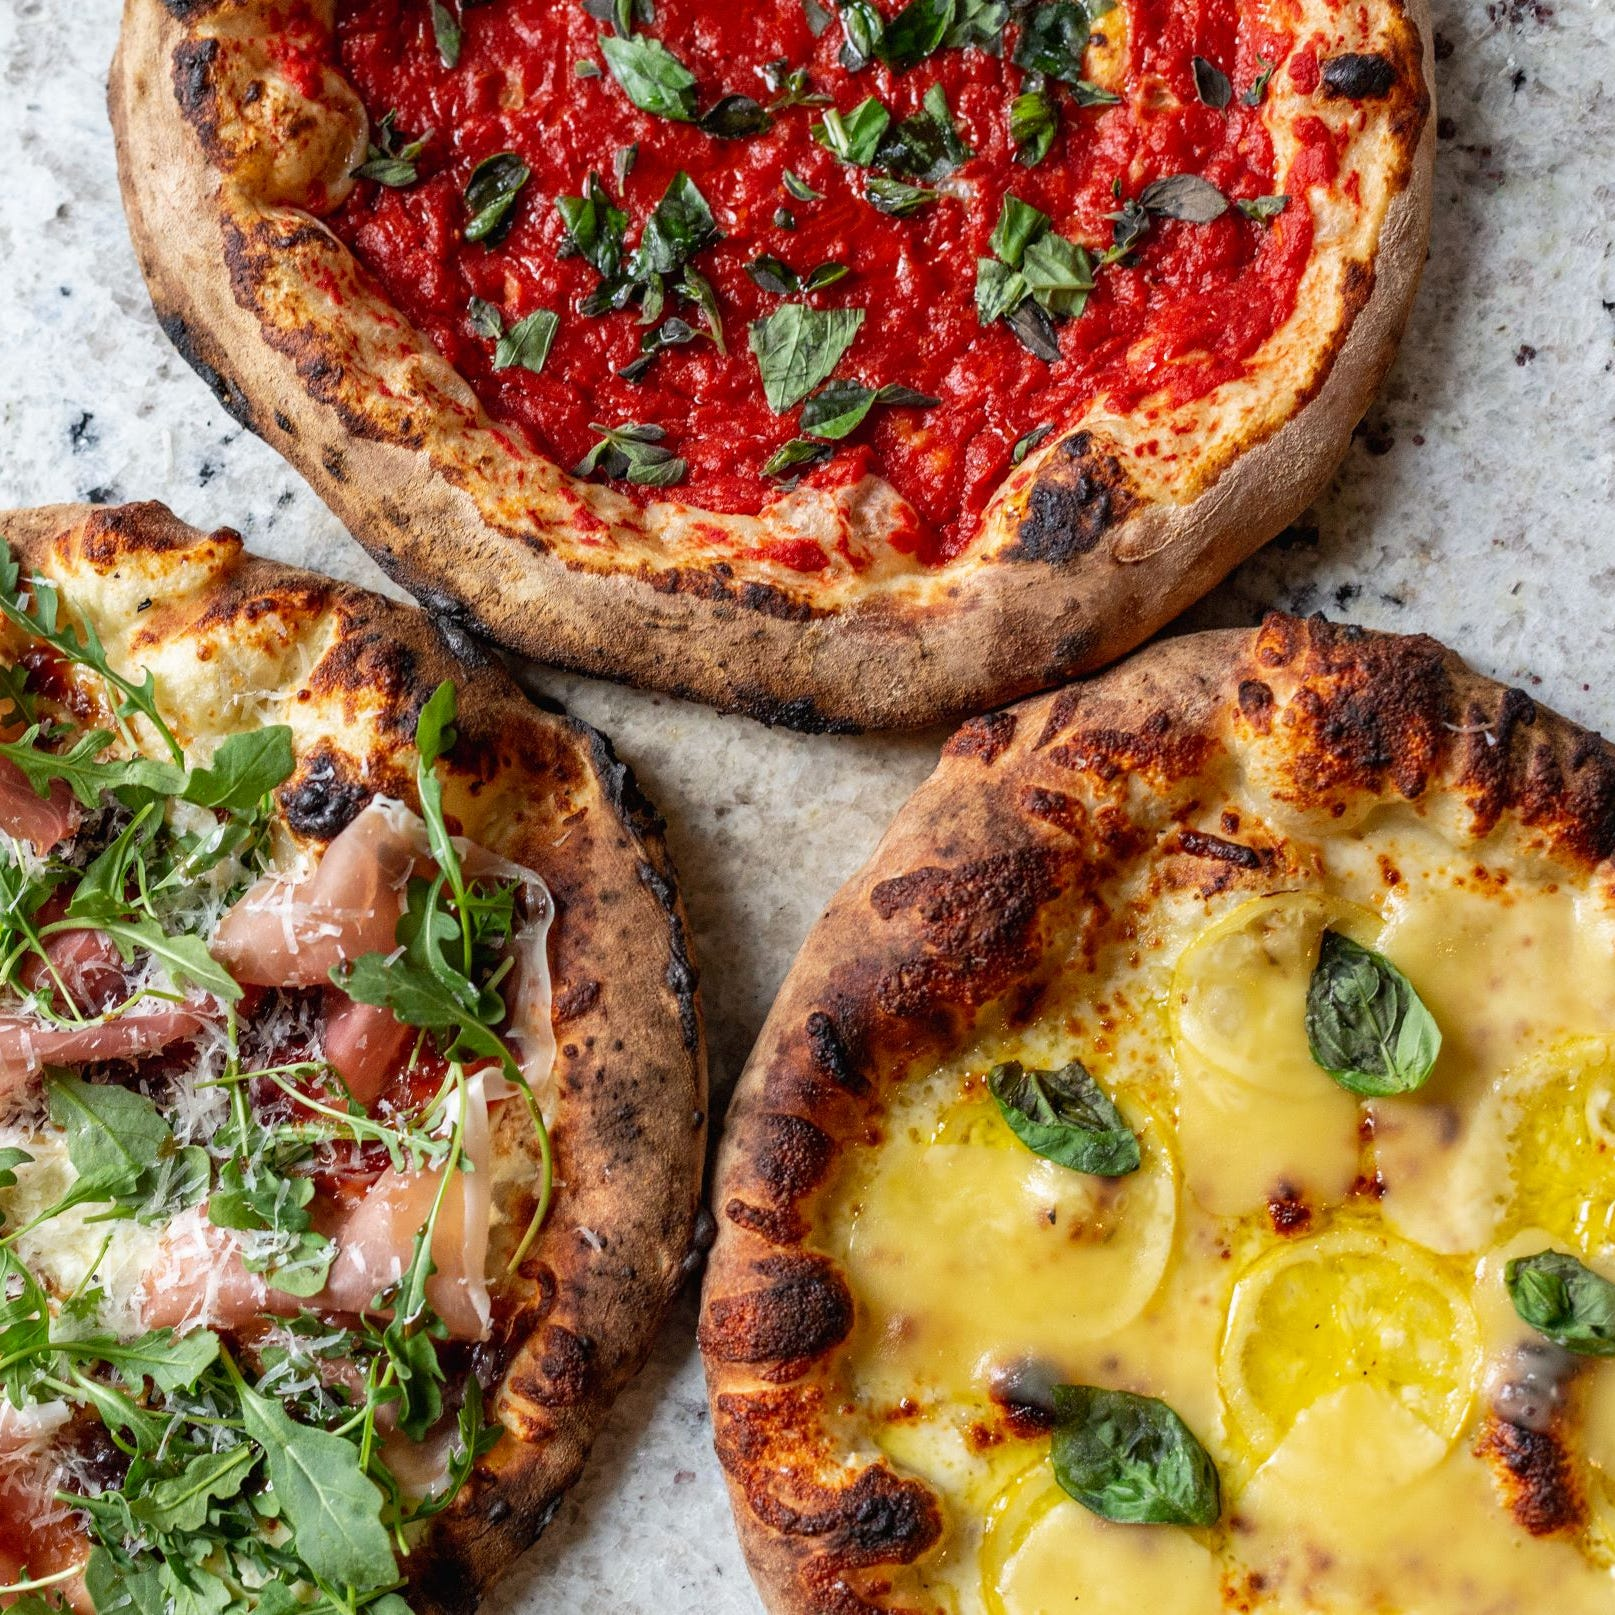 New Chappaqua Whole Foods serves up an in-store pizzeria restaurant